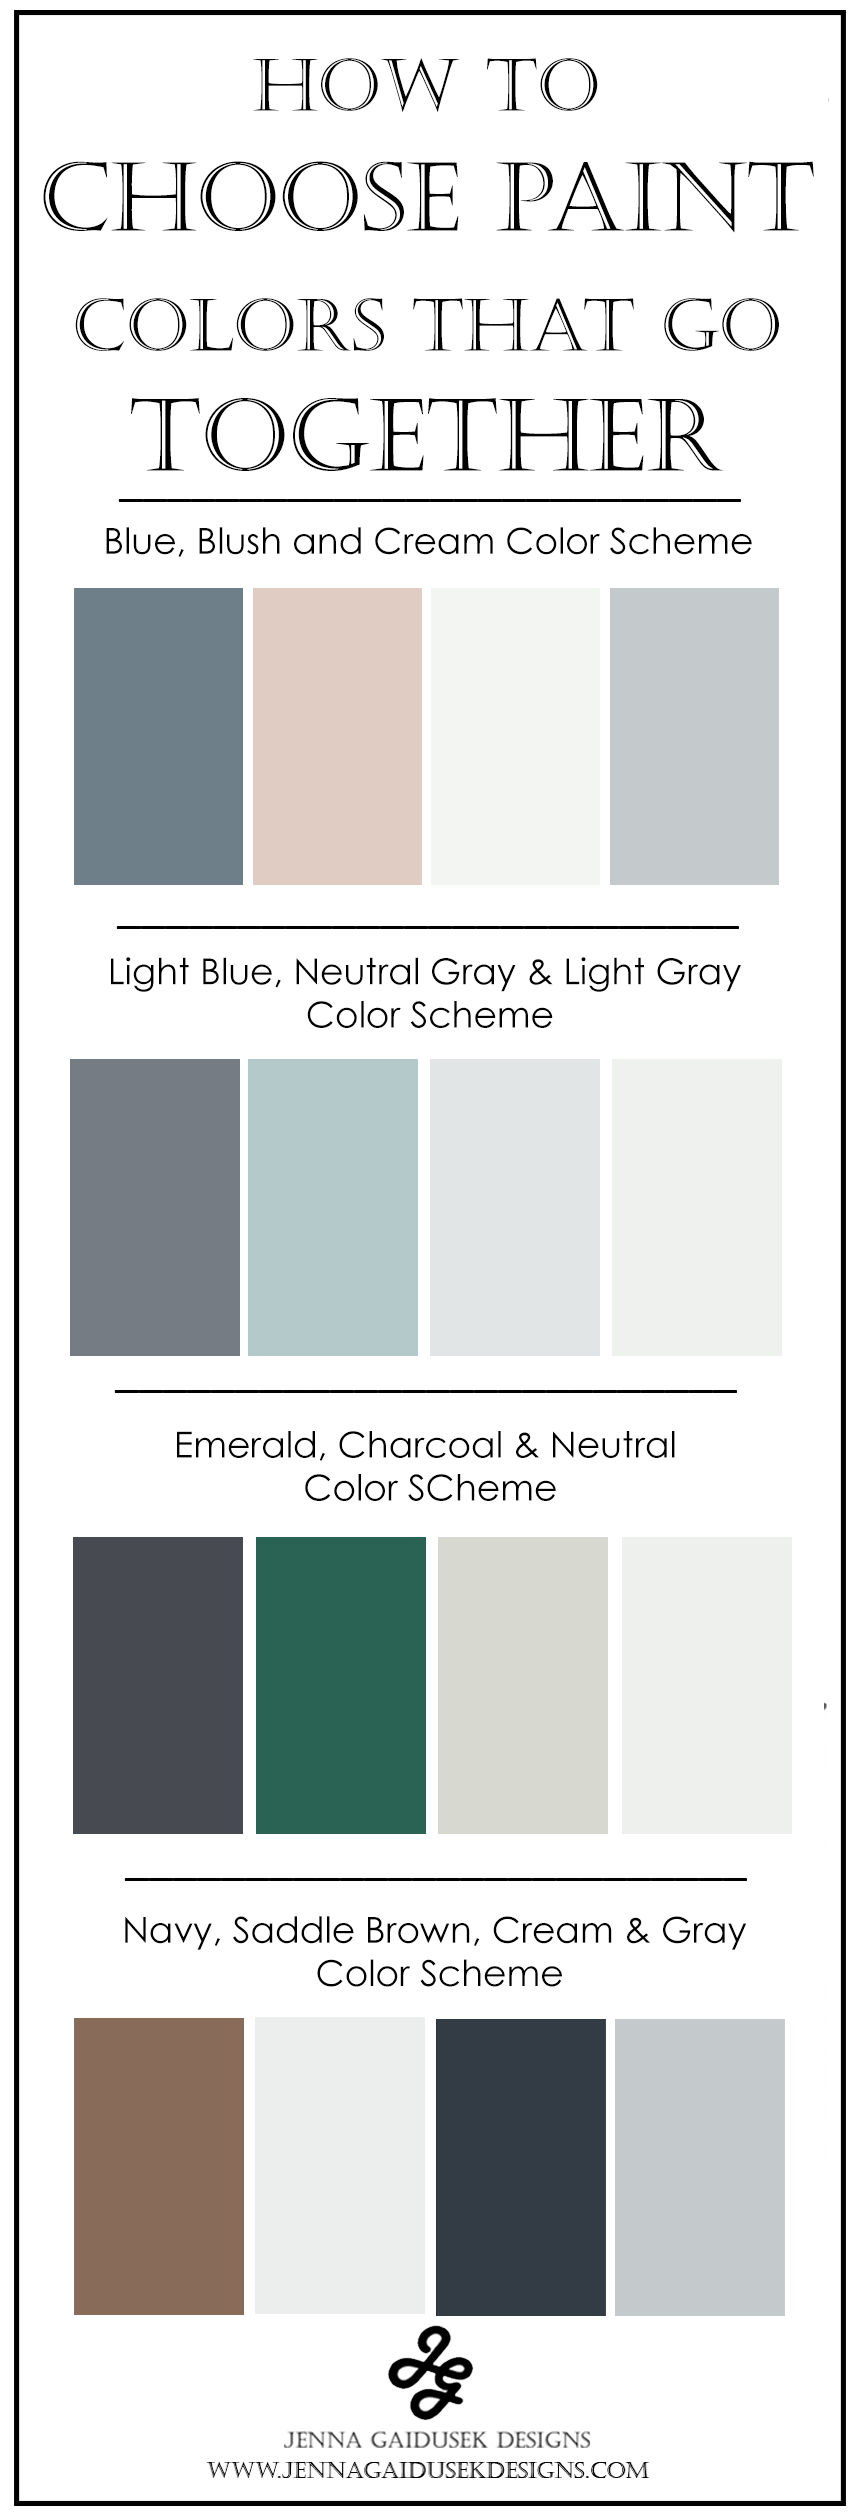 How To Choose Colors That Match - Jenna Gaidusek Designs - 4 Color P ... - New Ideas